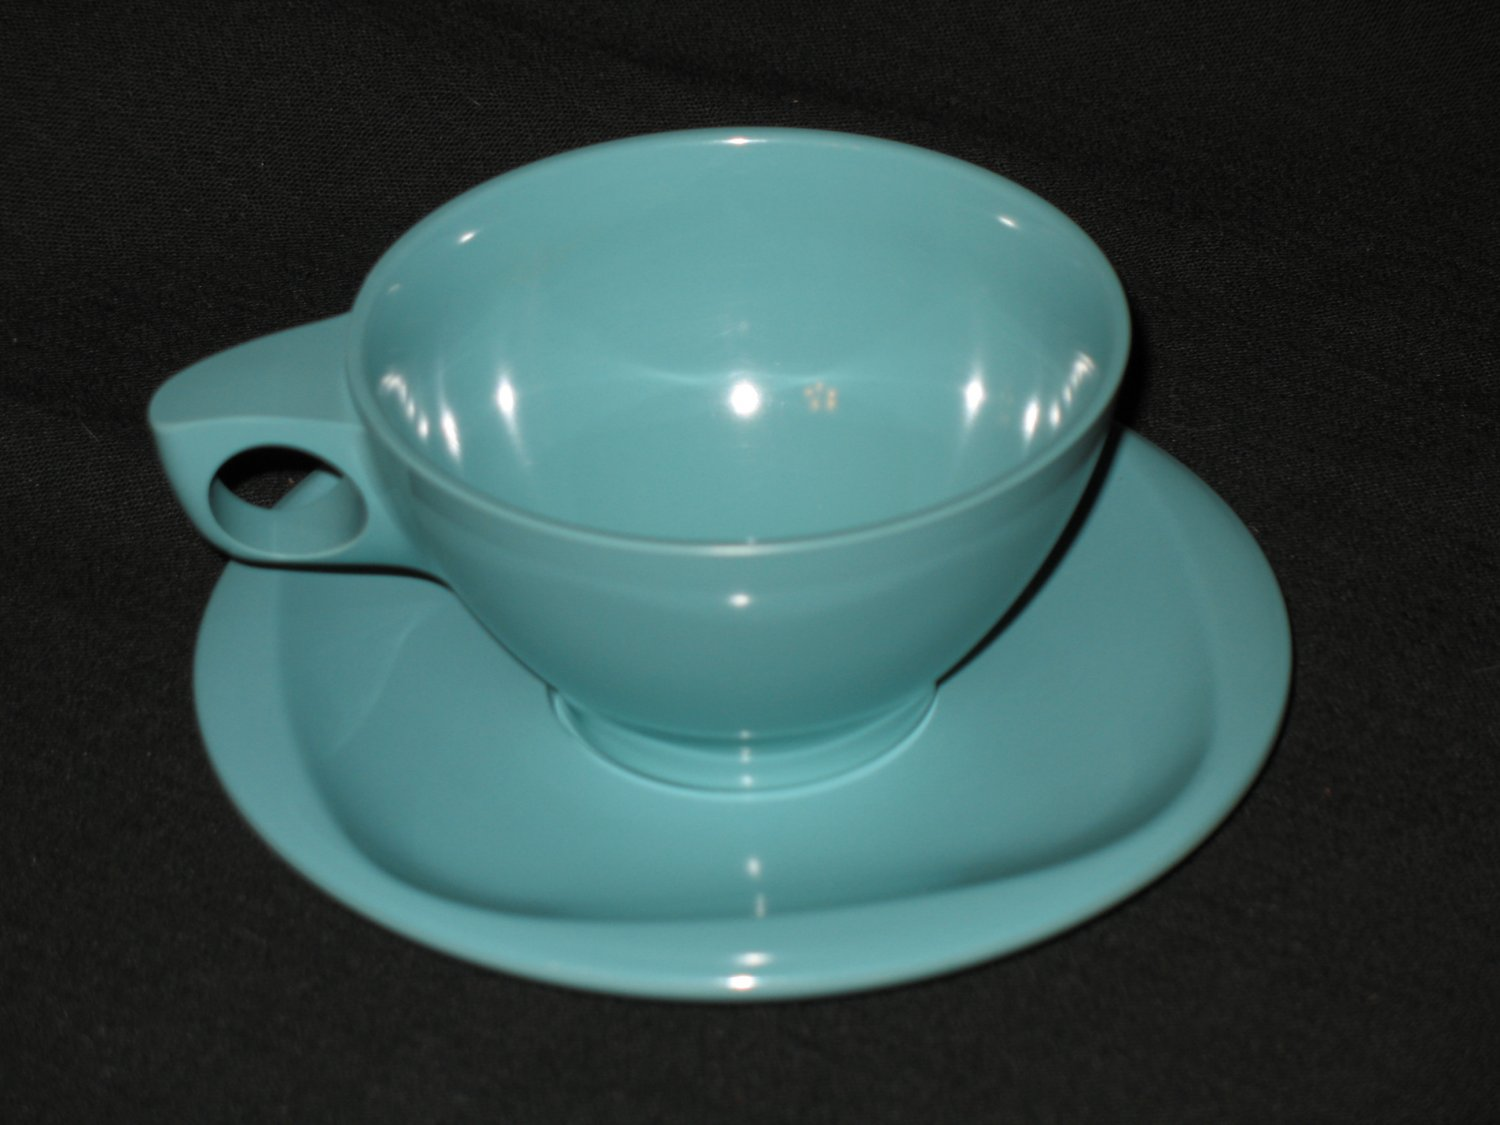 Boonton Ware  Cup and Saucer Set Turquoise